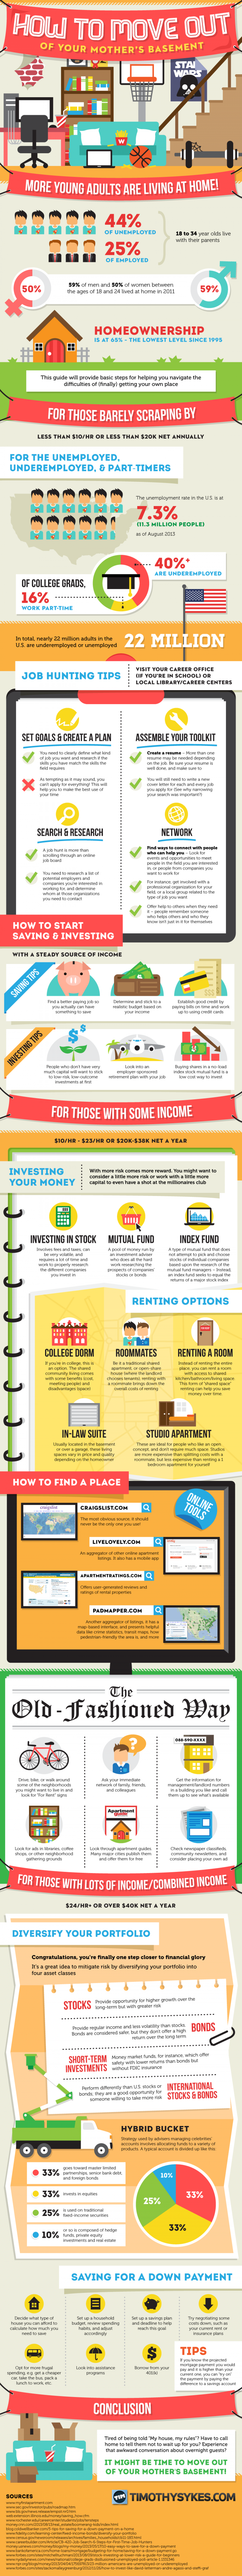 How to Move Out of Your Mother's Basement Infographic